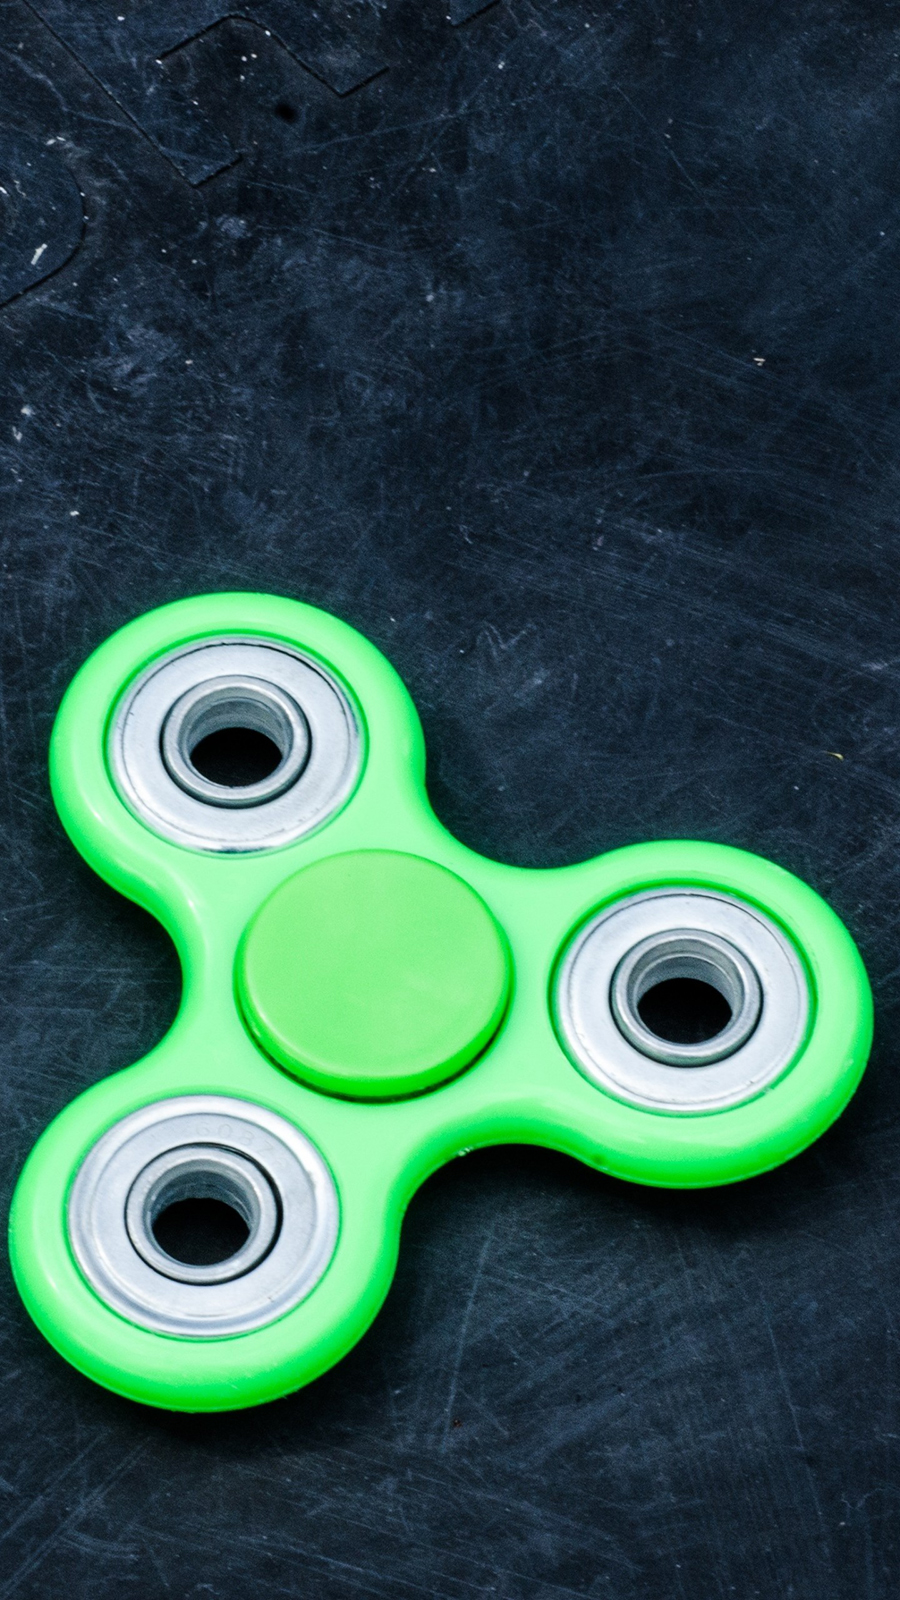 Spinner, Blades, Lobed, Toy Free Wallpapers Download